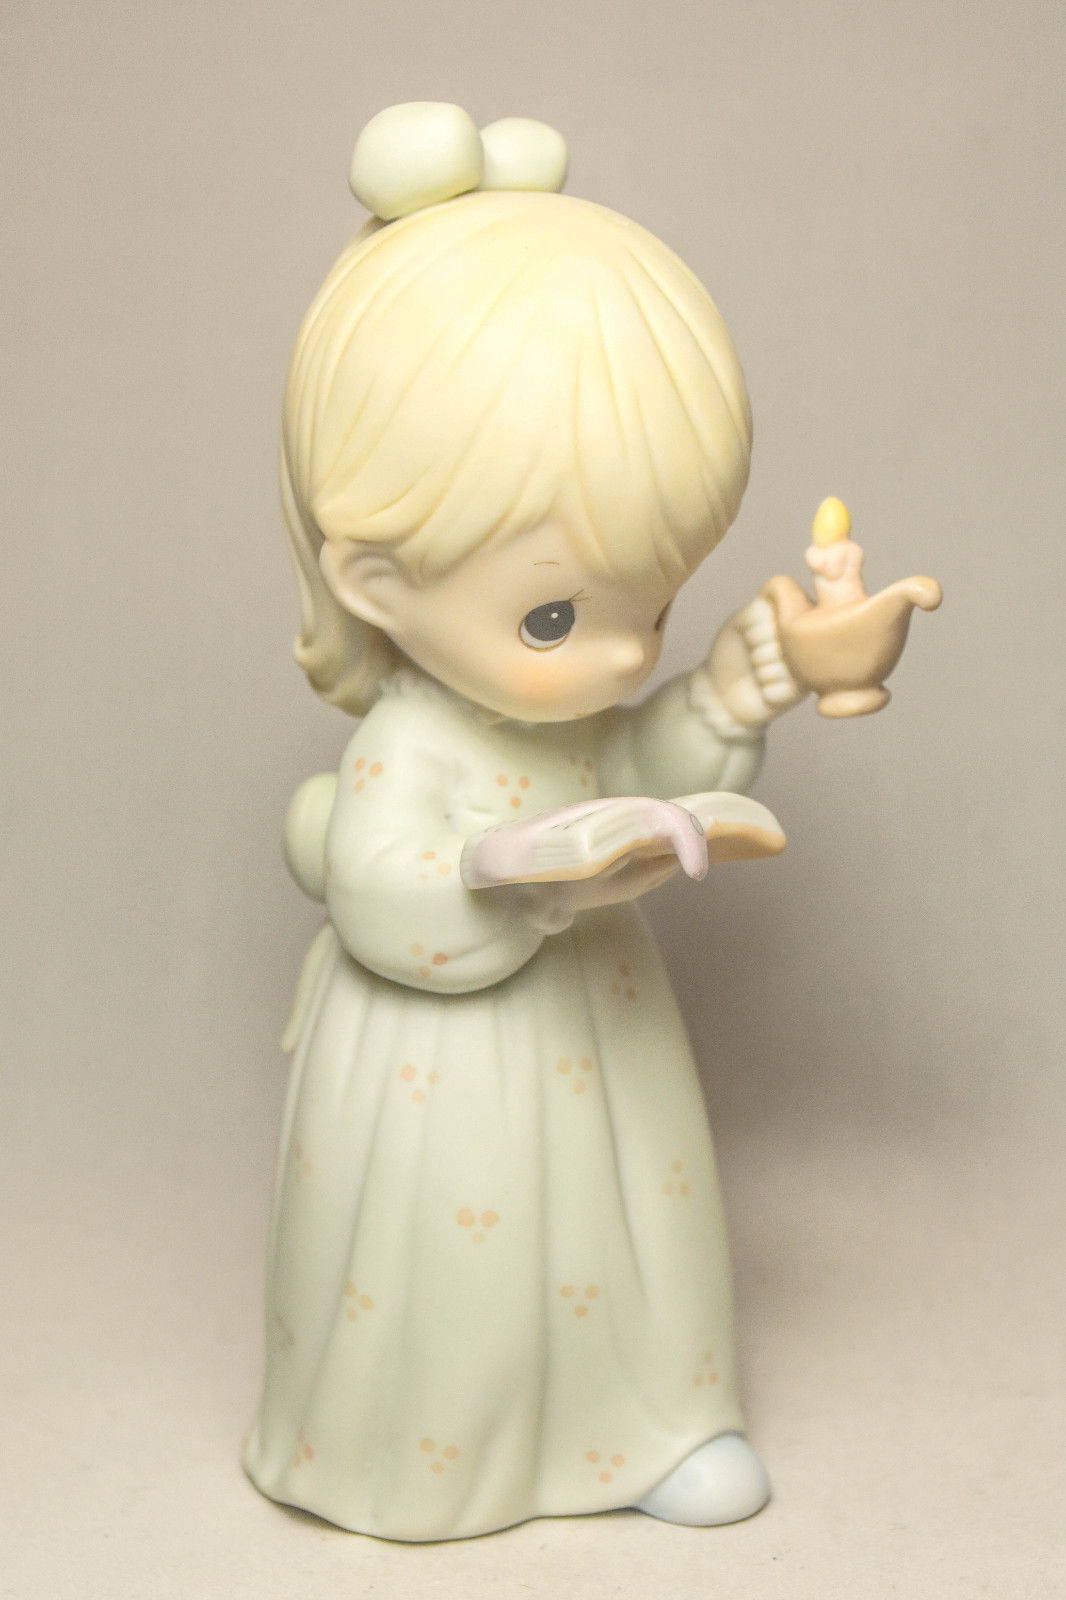 Primary image for Precious Moments: Once Upon A Holy Night - 523836 - Classic Figure